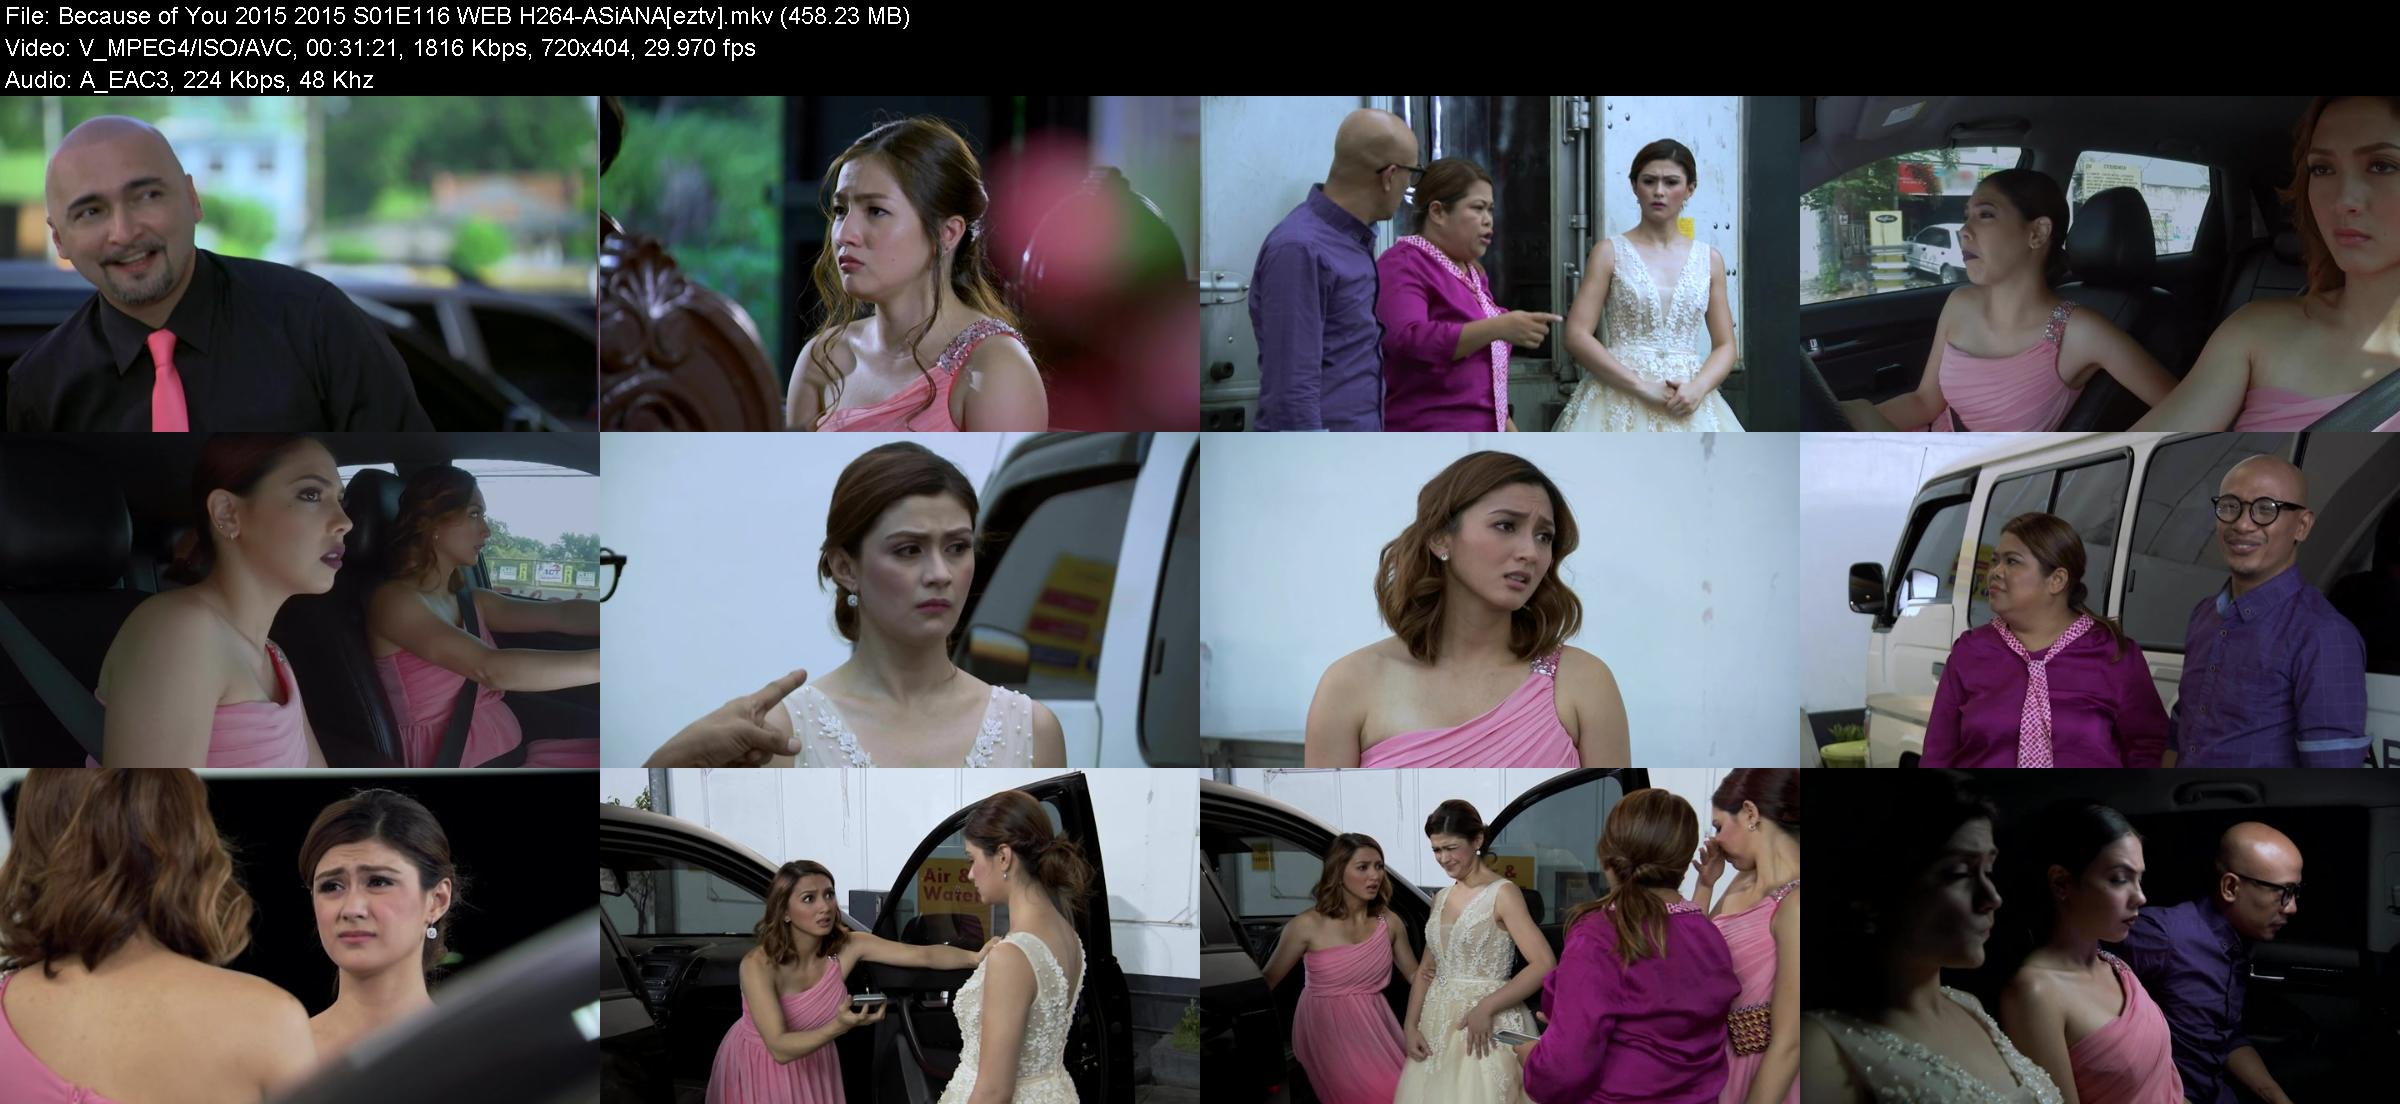 Because of You 2015 2015 S01E116 WEB H264-ASiANA